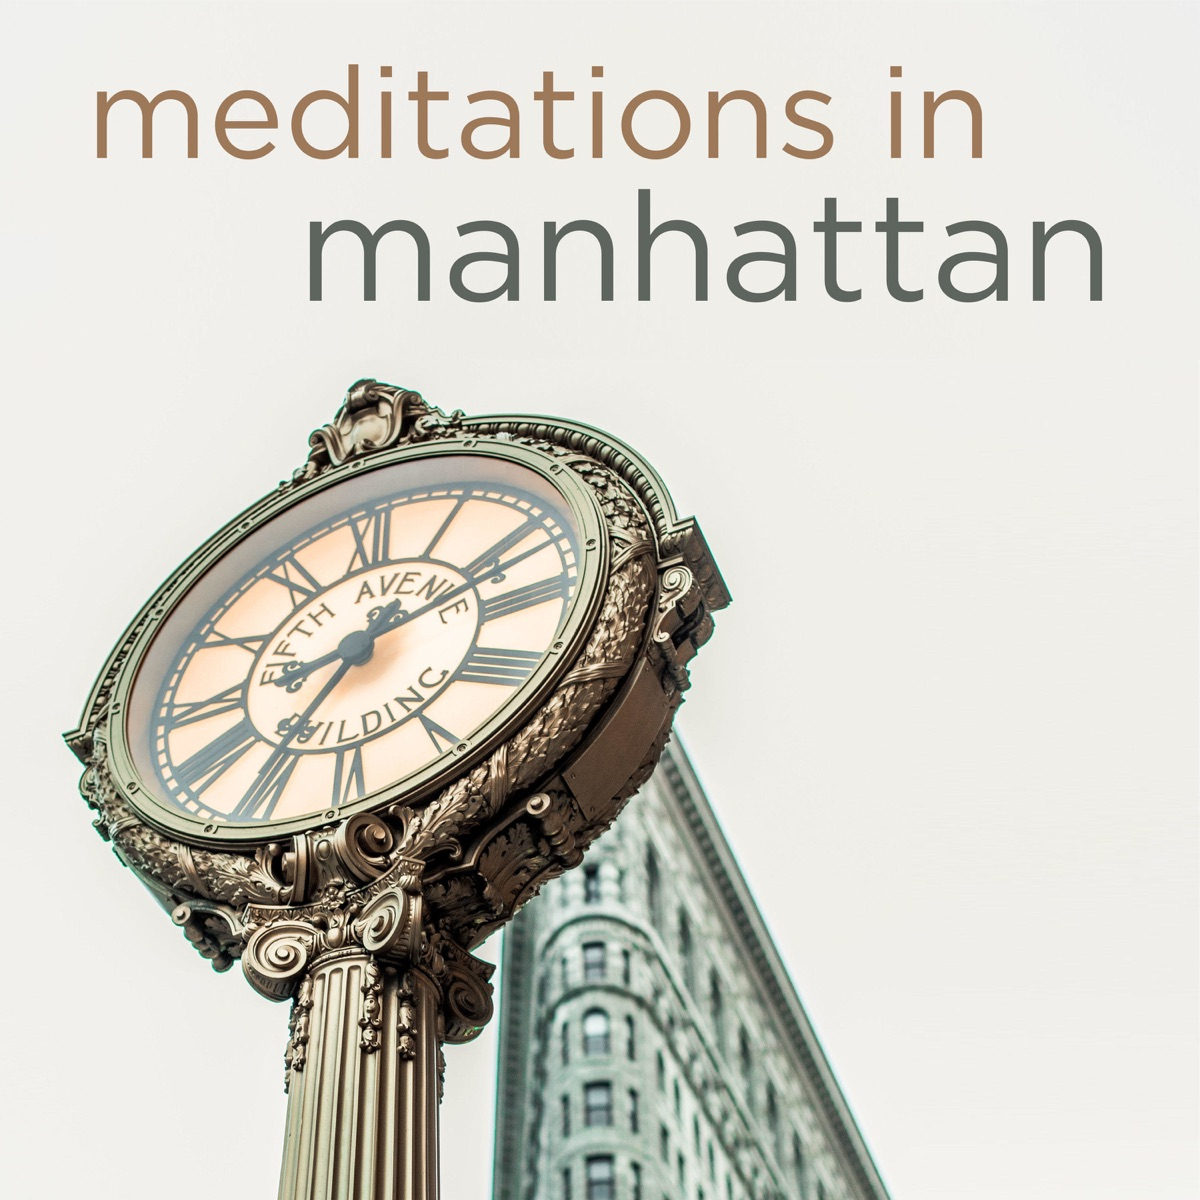 Meditations in Manhattan